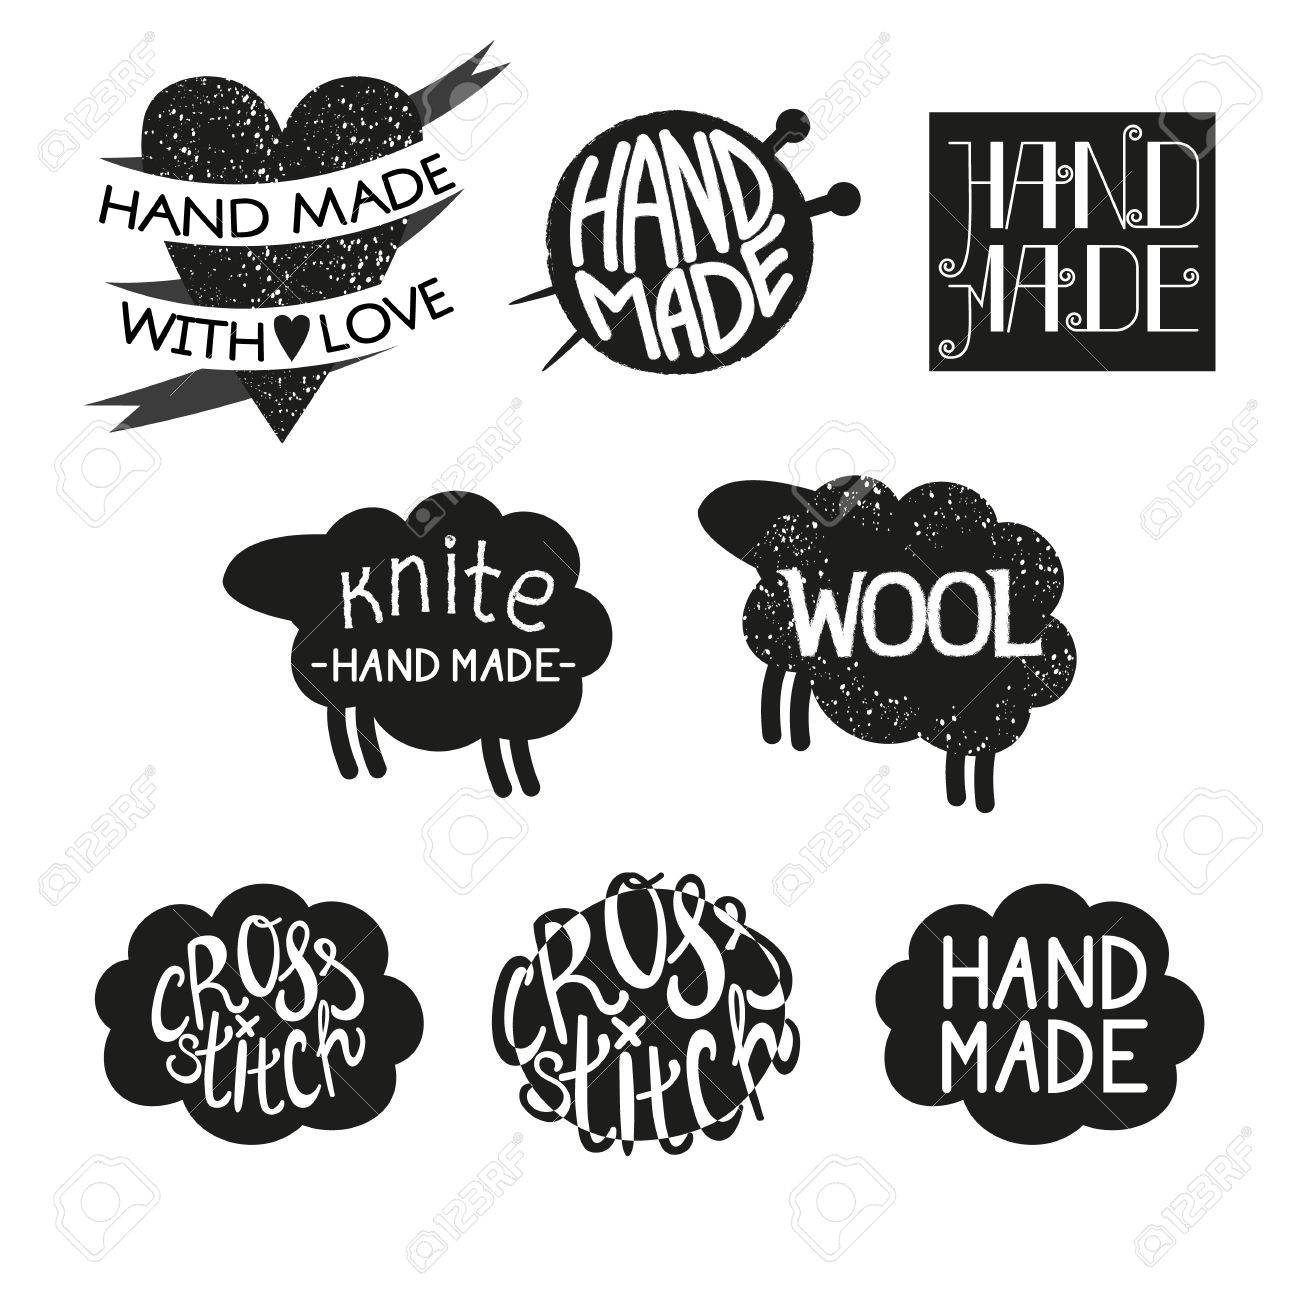 Captivating Set Of Different Styles Hand Made Logotypes Design Elements And Labels.  Hand Made, Made